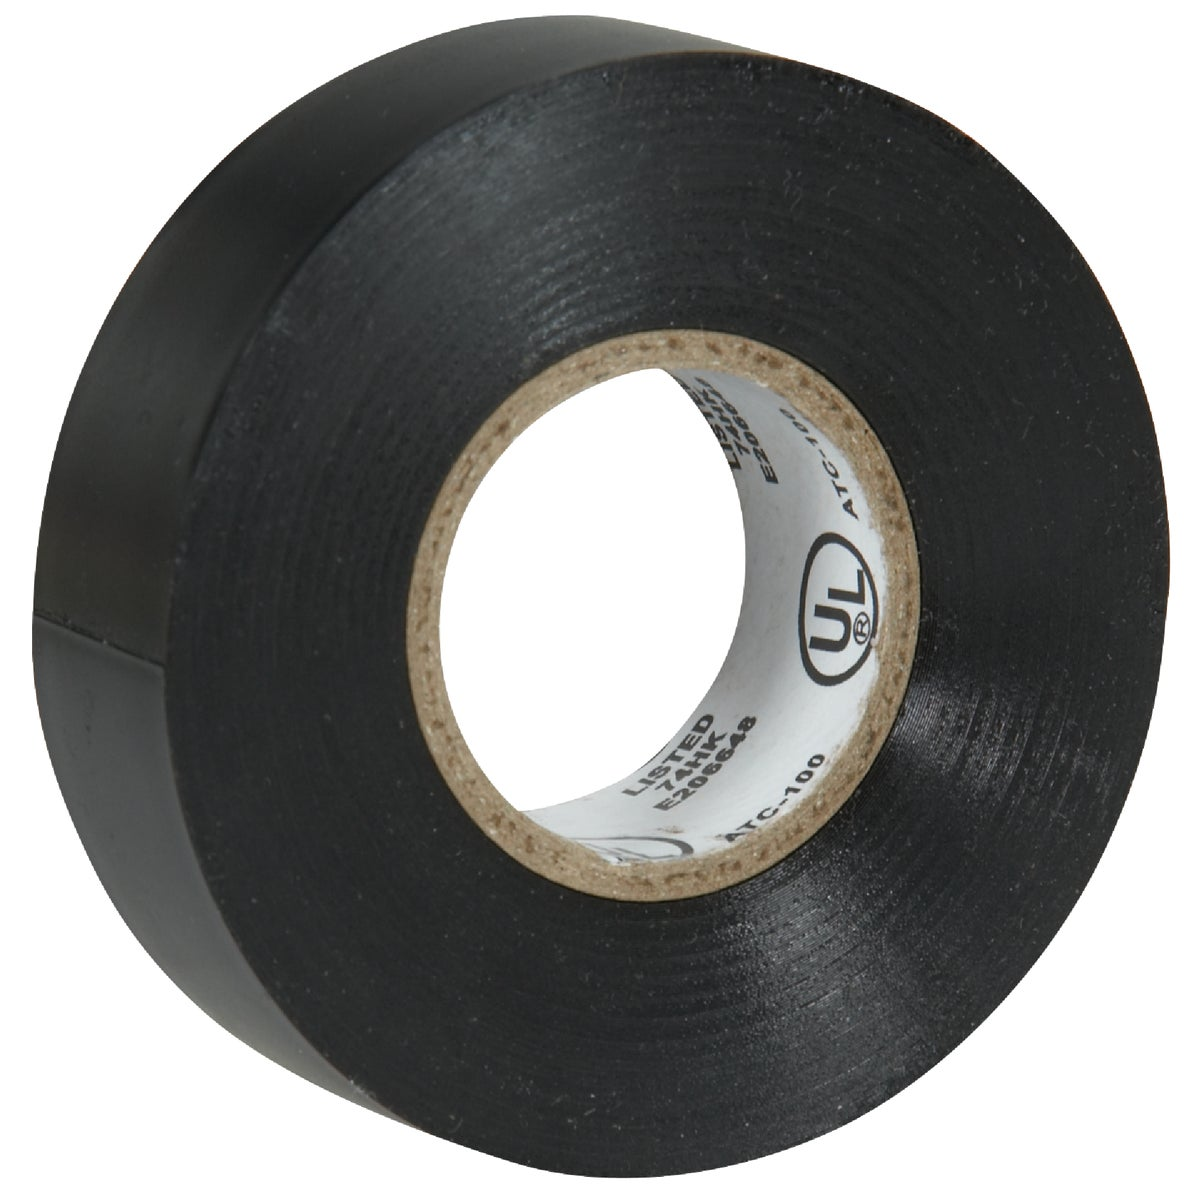 "3/4""X60' ELECTRICAL TAPE - 505705 by Do it Best"